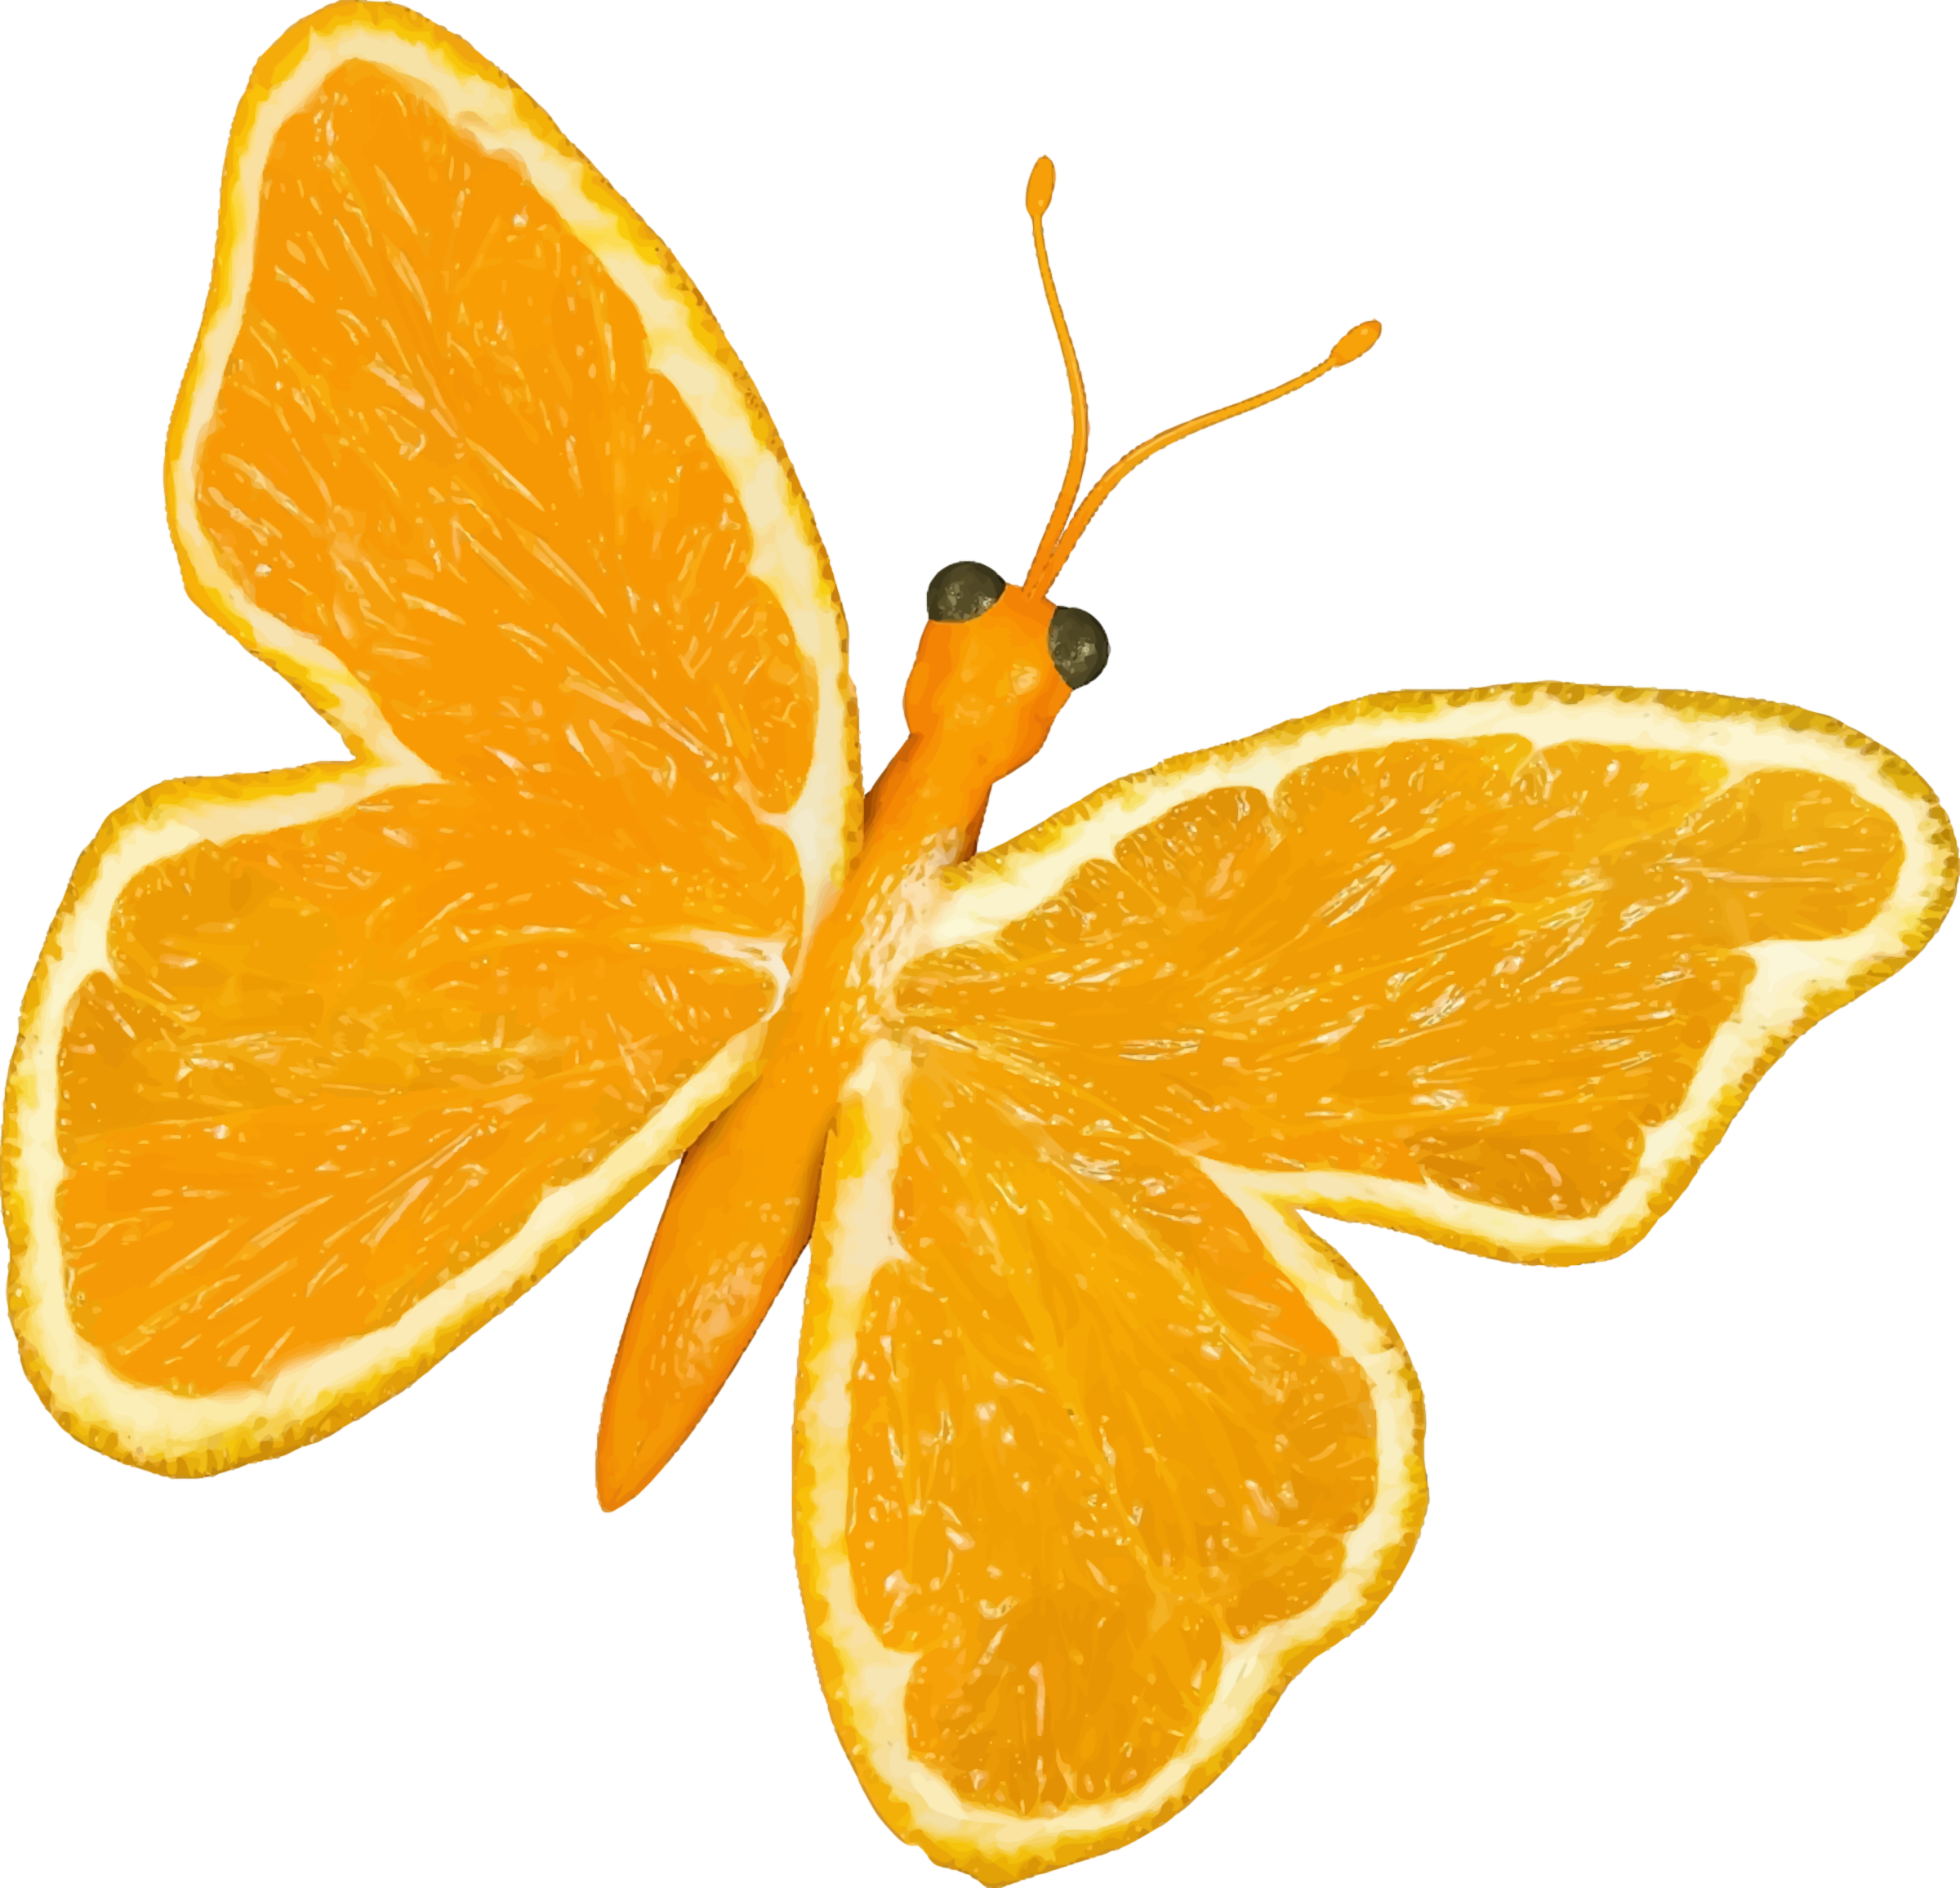 Clipart fruit orange. Citrus butterfly big image